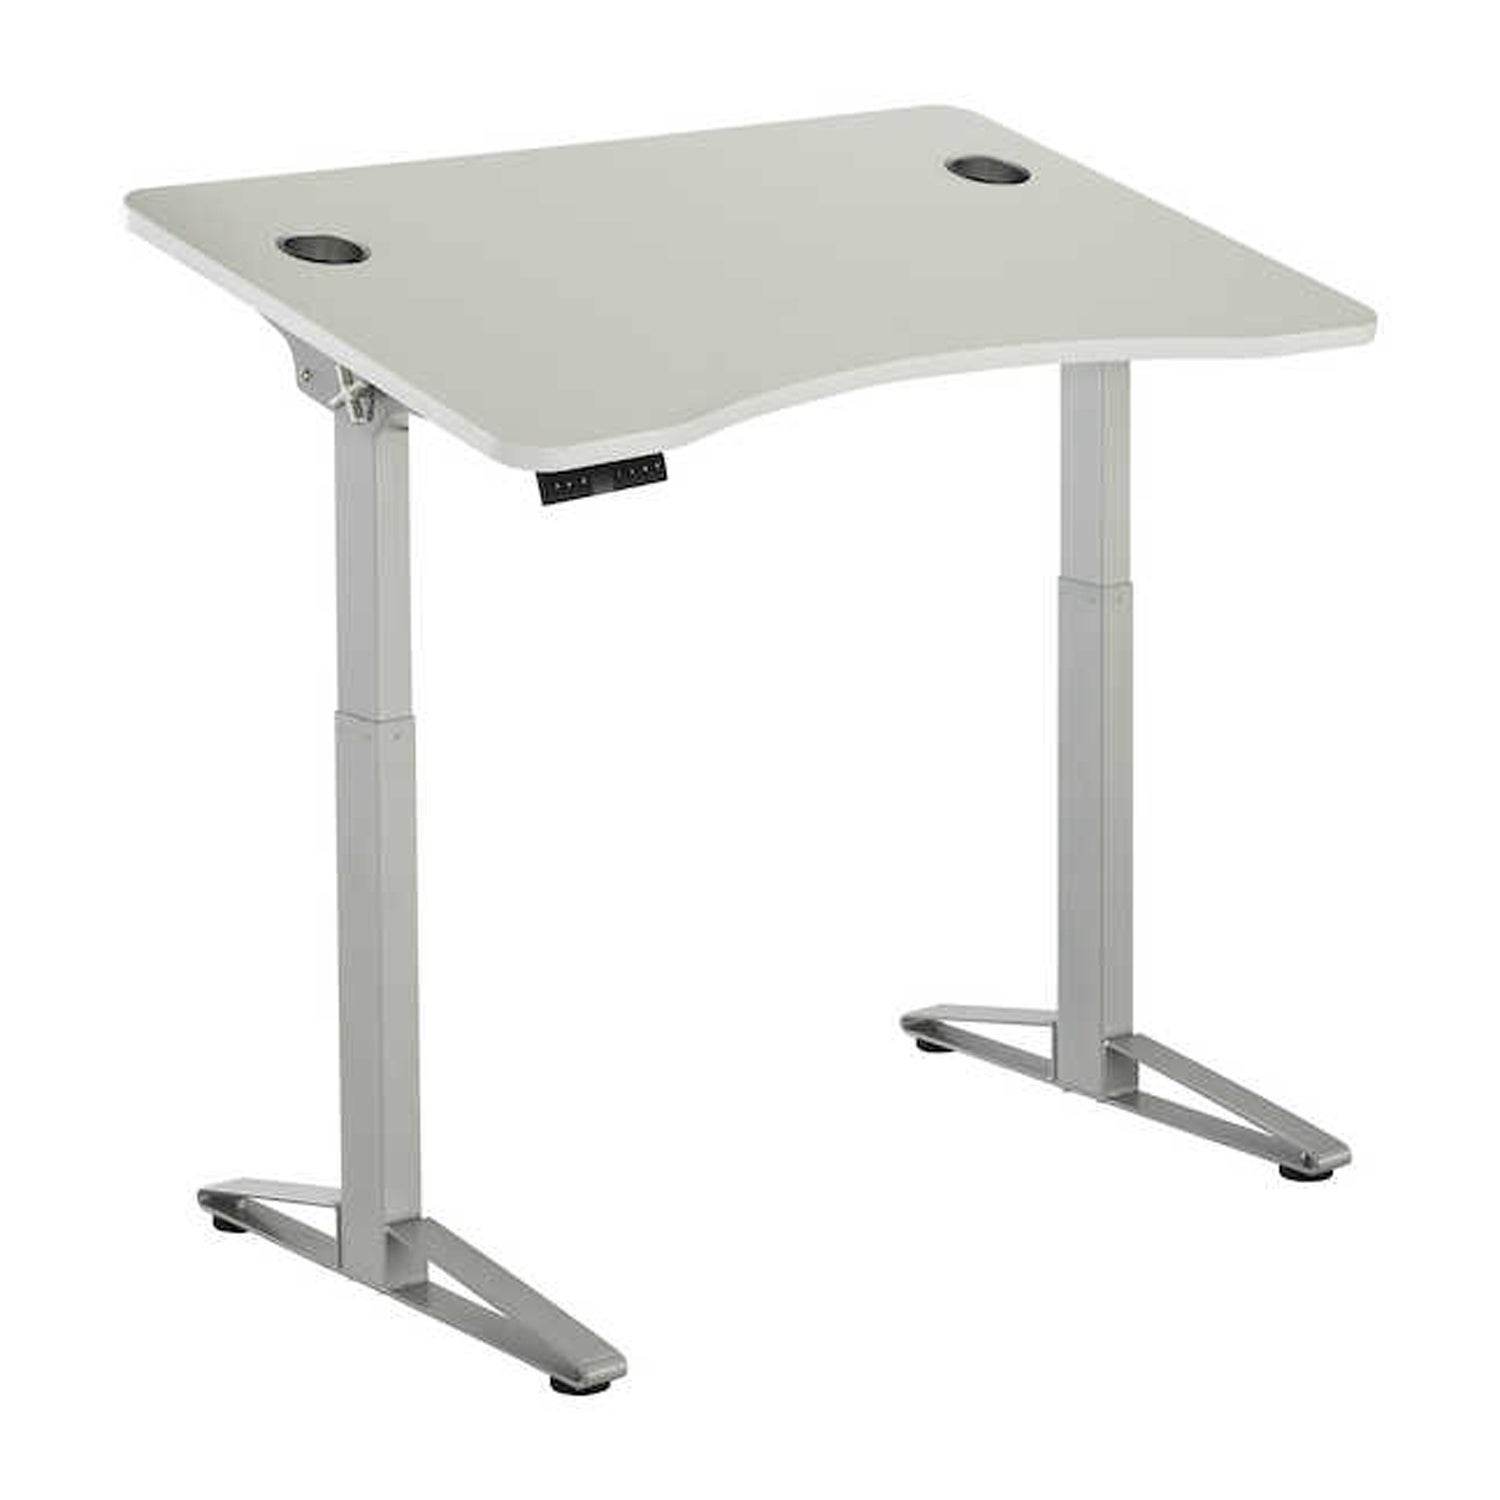 Shop Safco Defy Electric Adjustable Height Desk Base   Free Shipping Today    Overstock   28216027